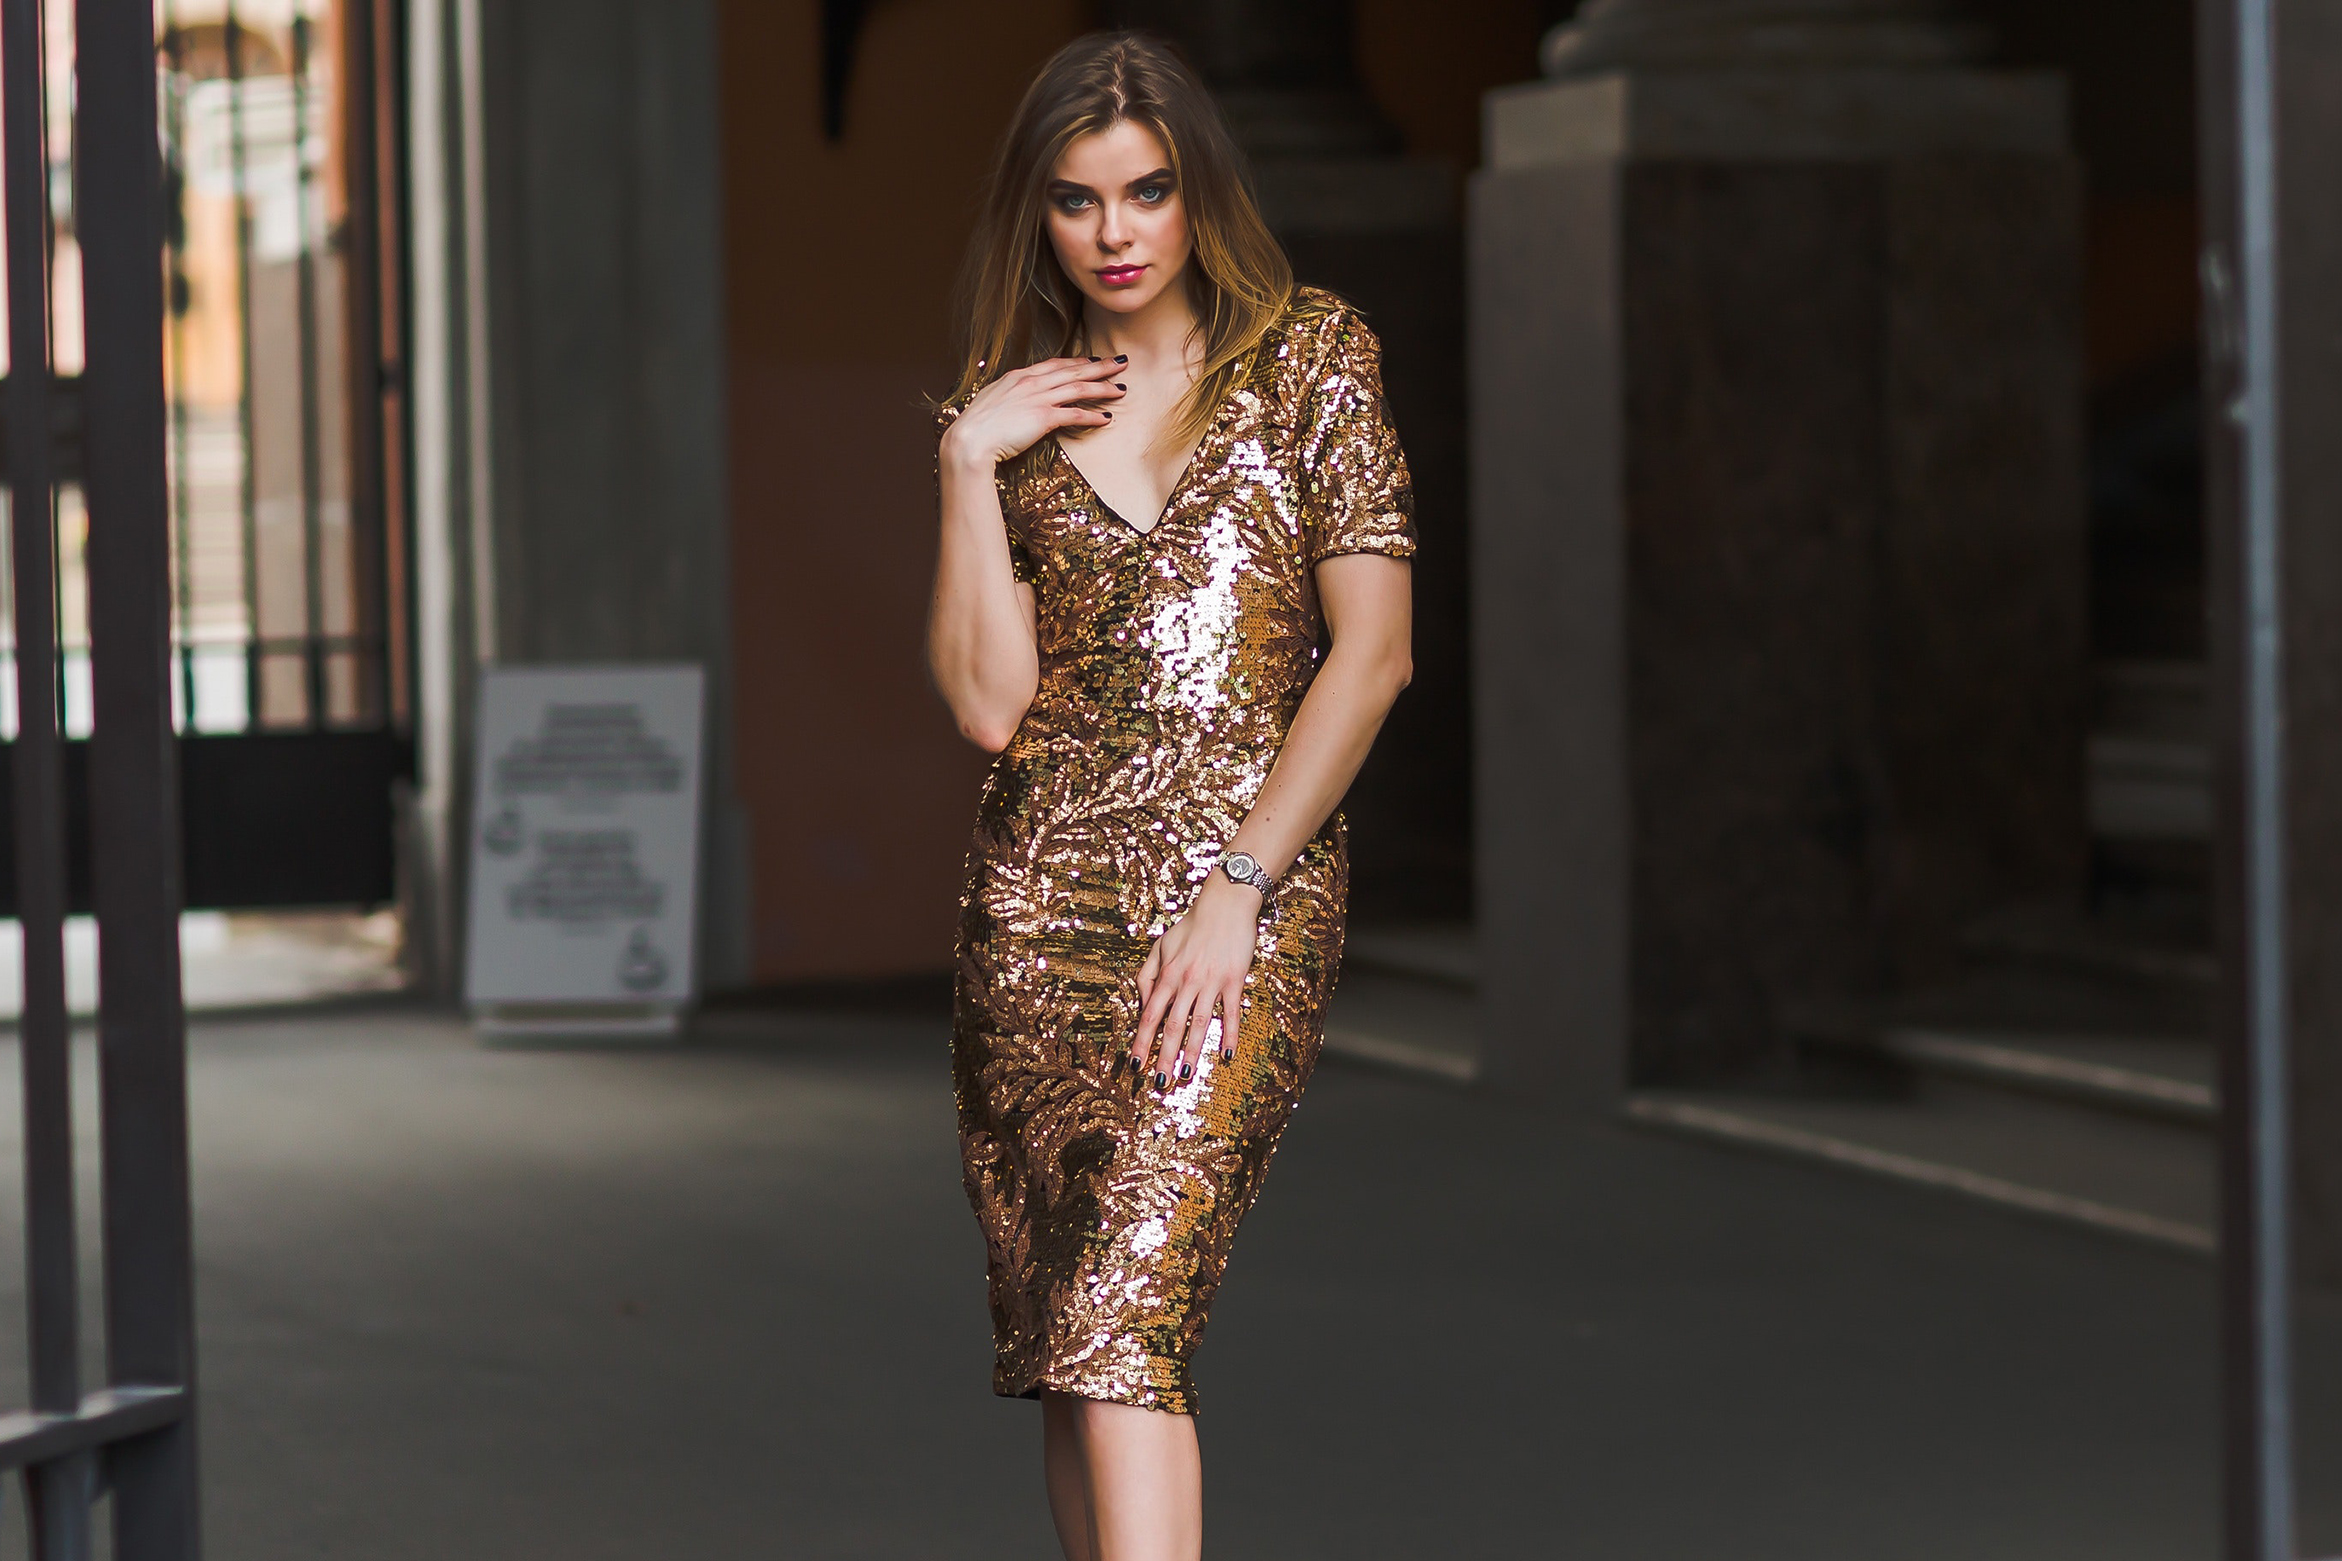 b1d365314c The Best Online Stores to Buy Prom Dresses - Shippn Blog